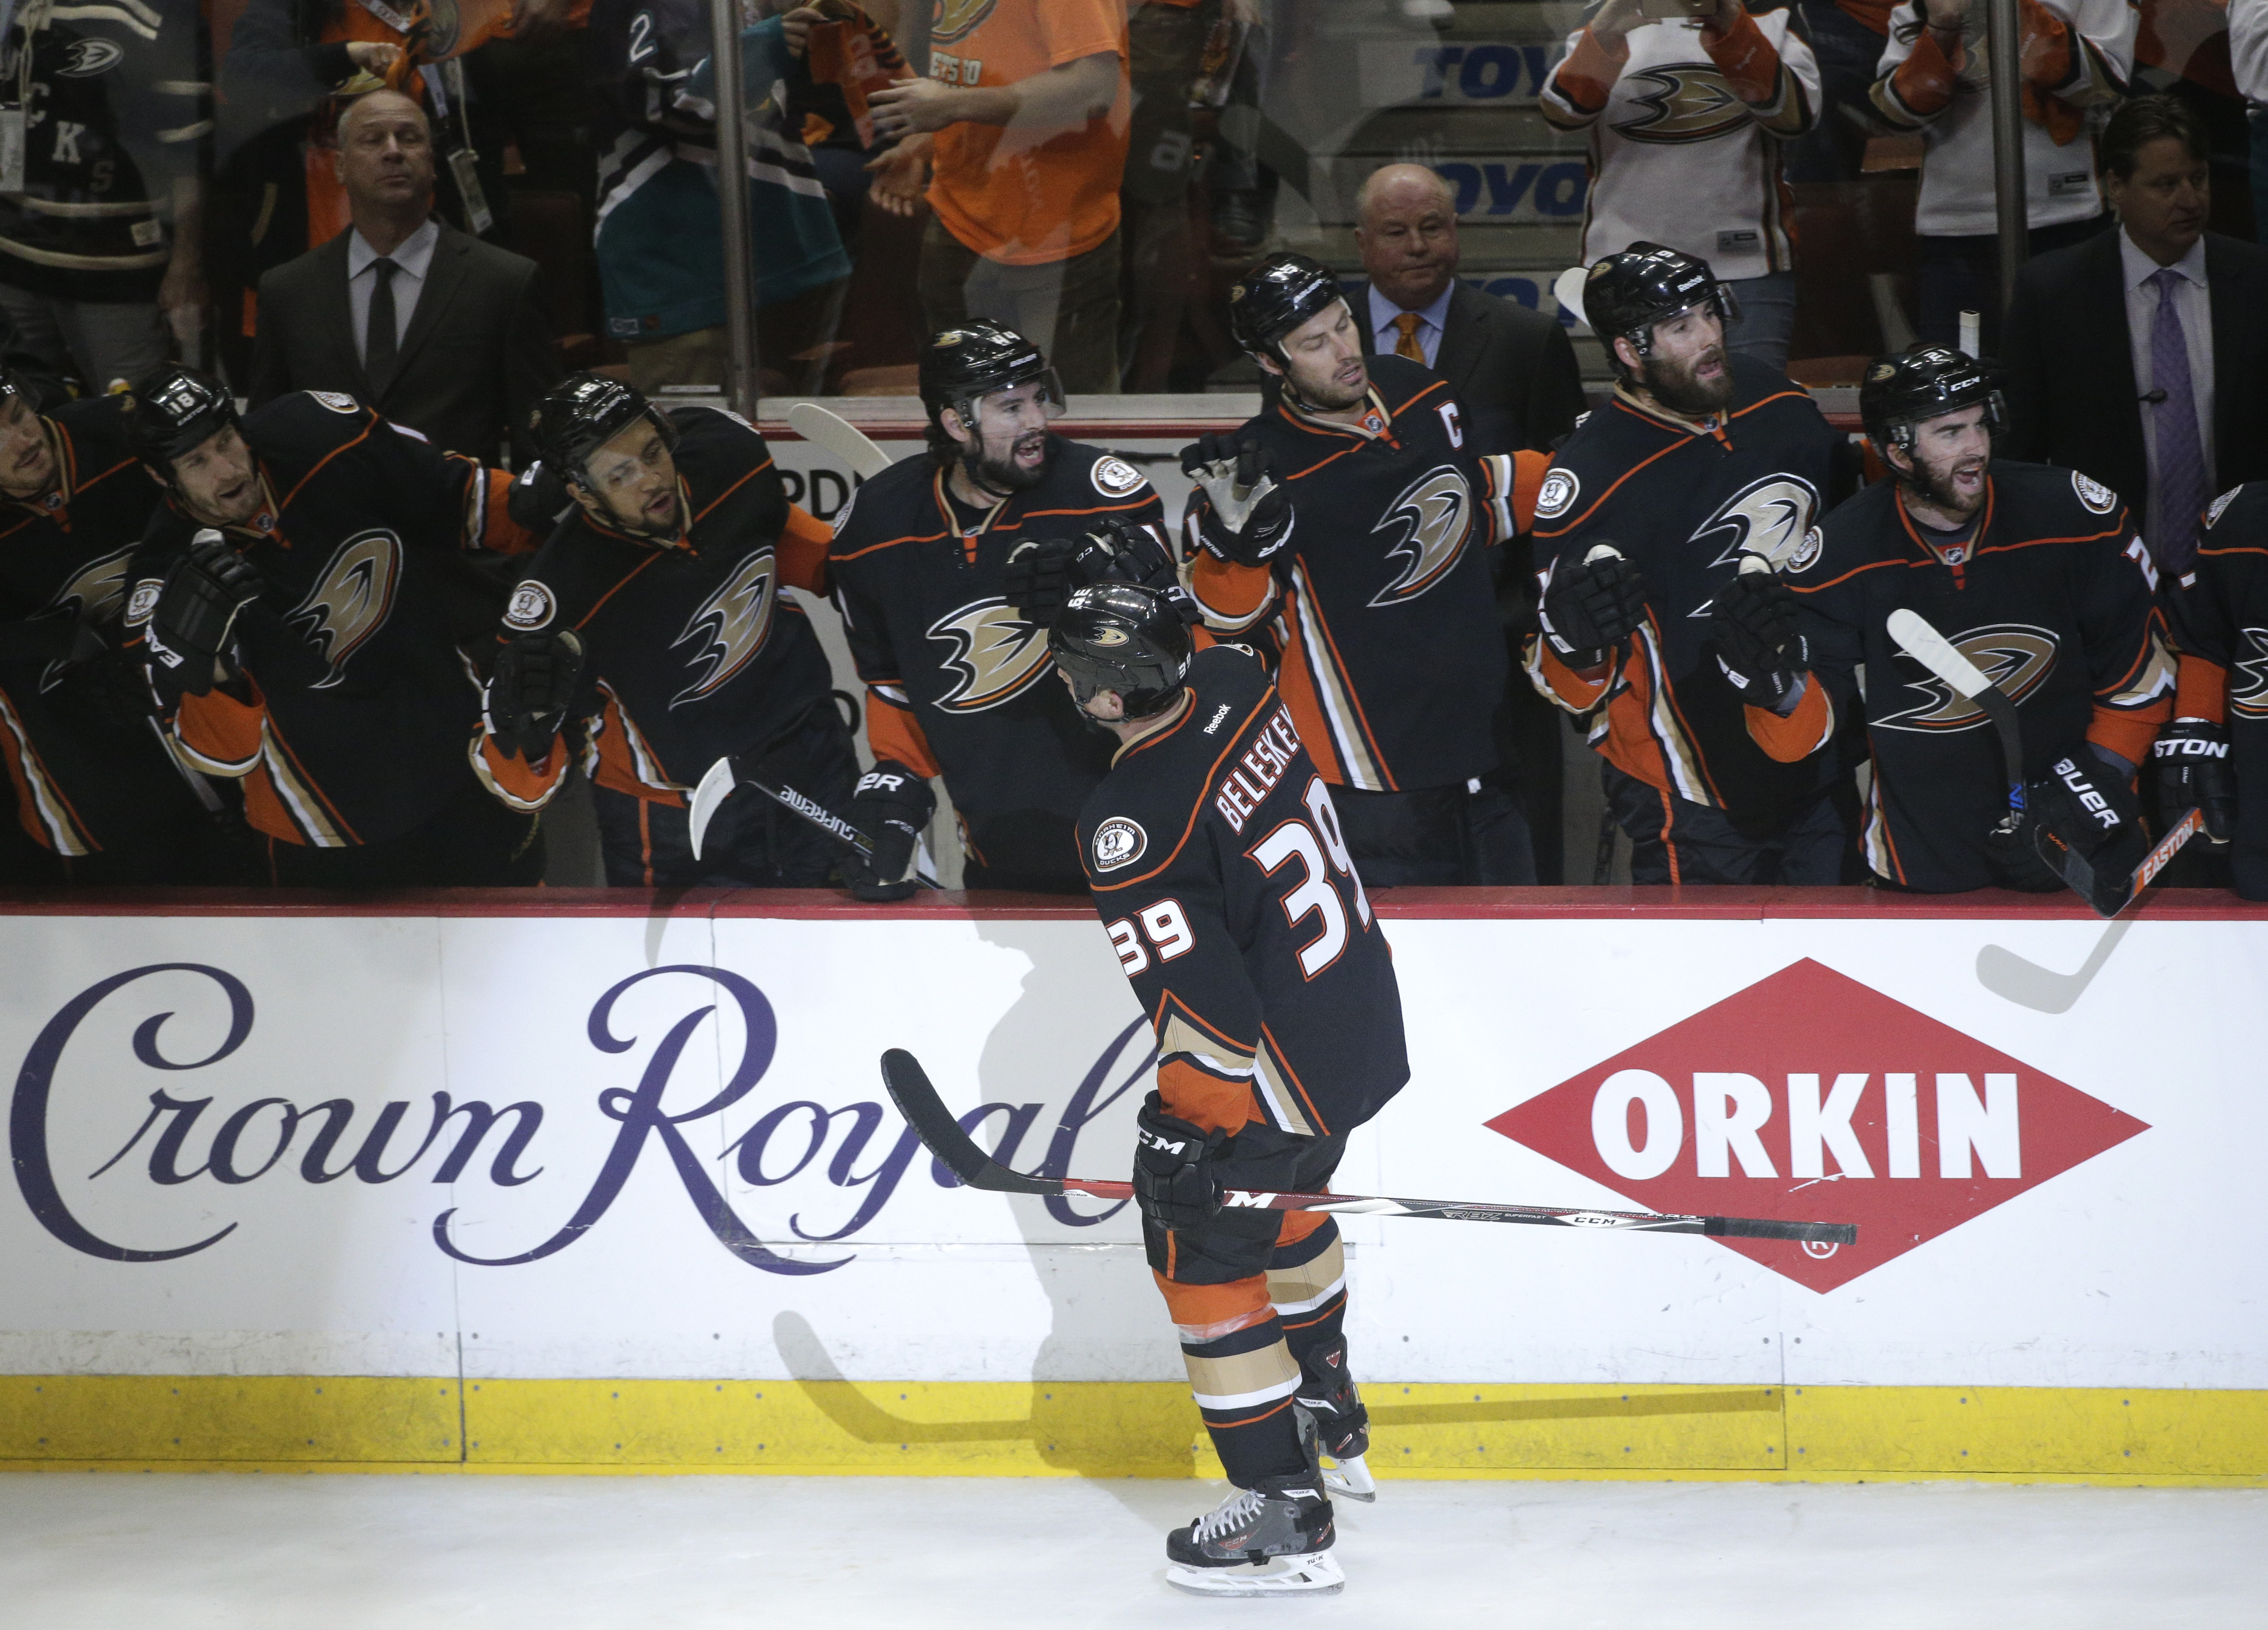 Anaheim Ducks' Matt Beleskey, center, celebrates his goal with teammates during the first period of Game 2 in the second round of the NHL Stanley Cup hockey playoffs against the Calgary Flames, Sunday, May 3, 2015, in Anaheim, Calif. (AP Photo/Jae C. Hong